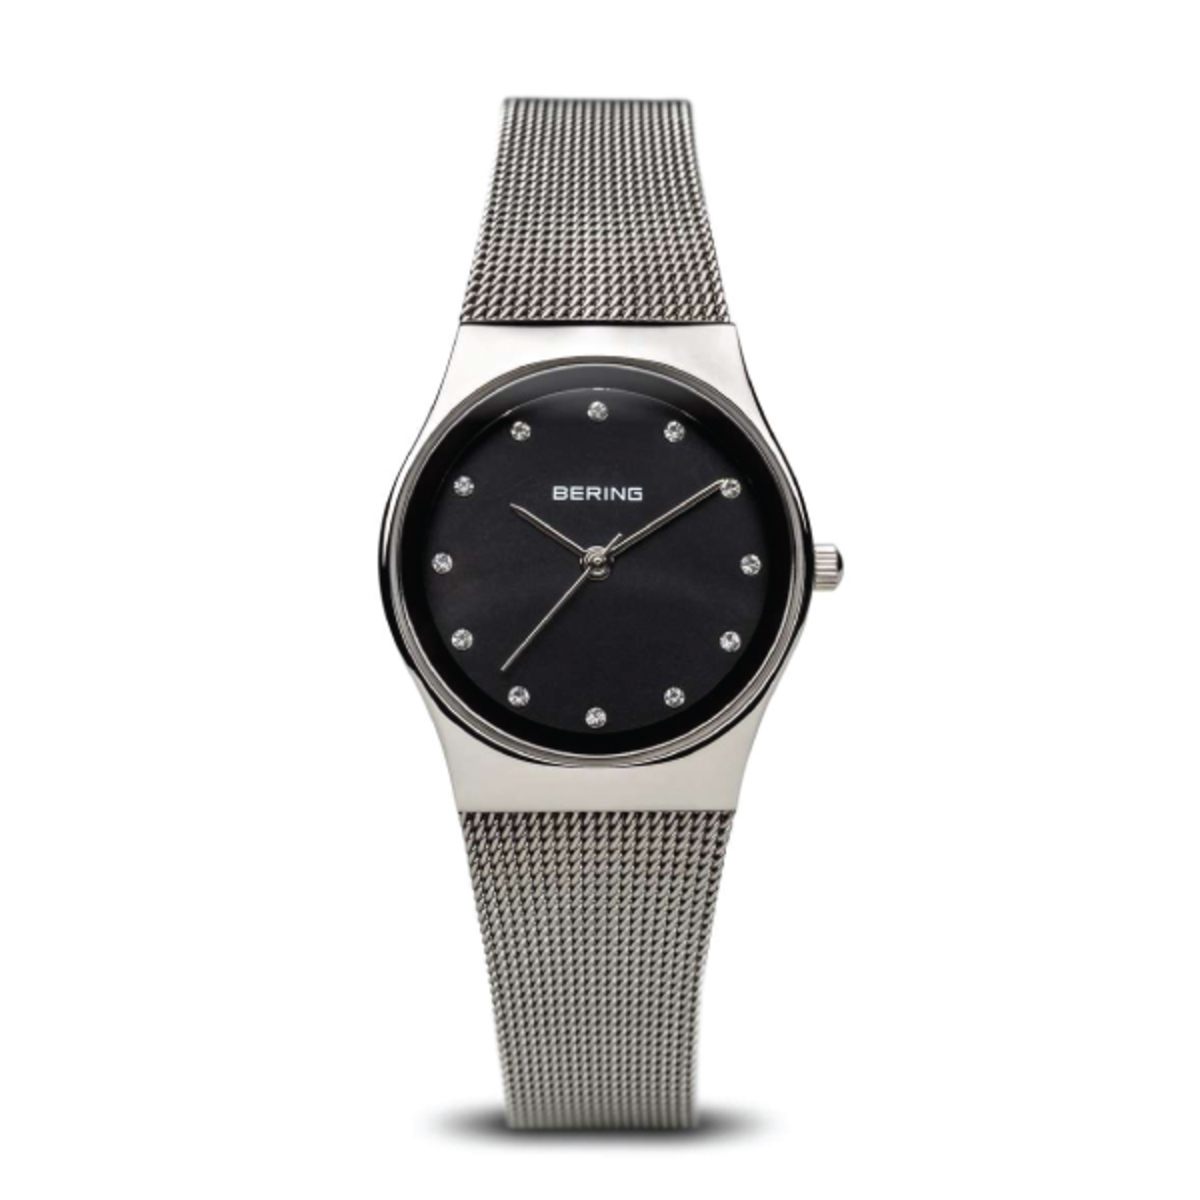 Bering Time Watch Classic Collection (12927-002)